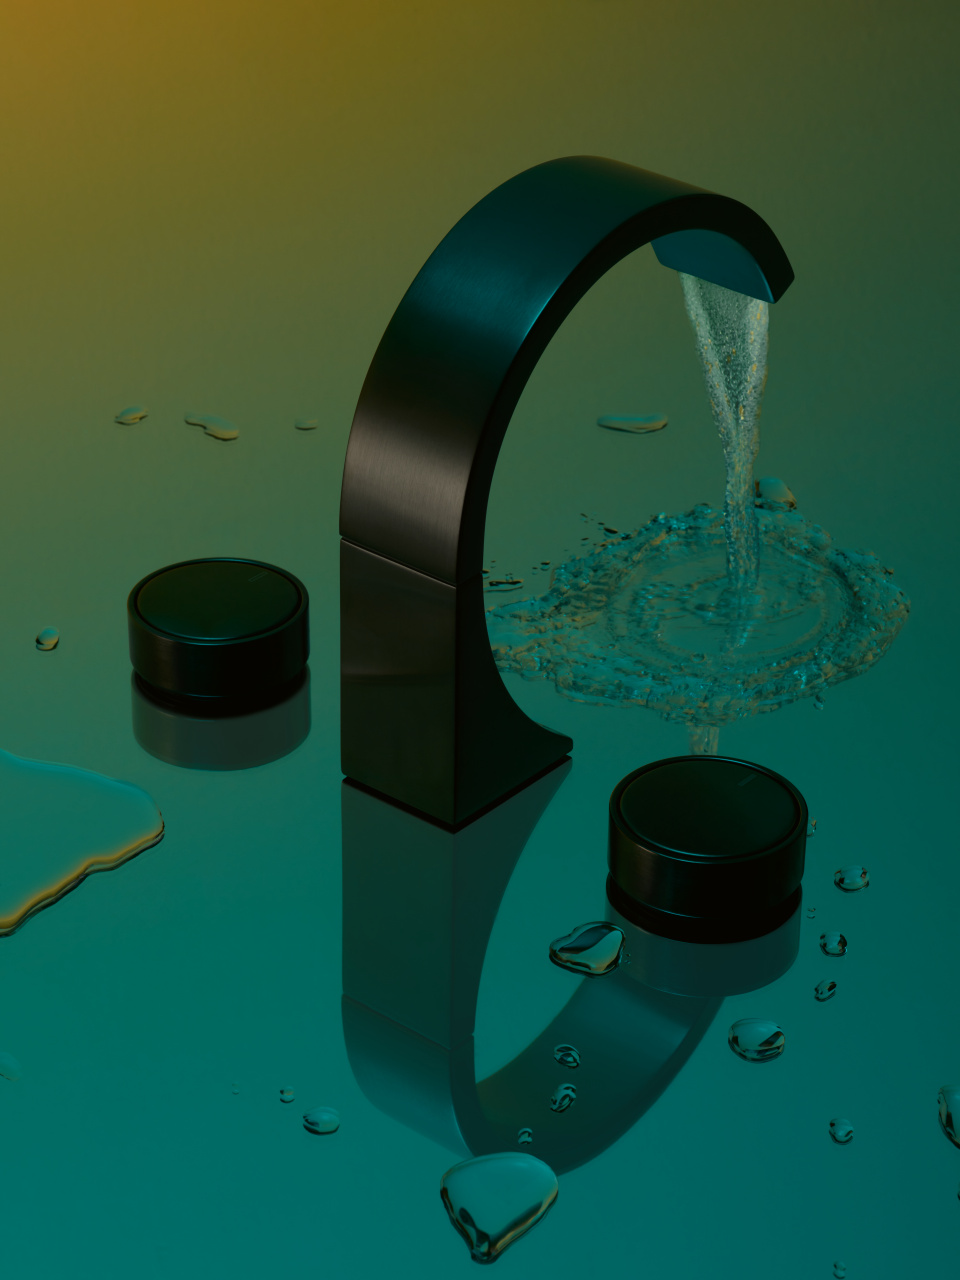 Matte black Dornbracht faucet CYO collection with water and black matte knobs